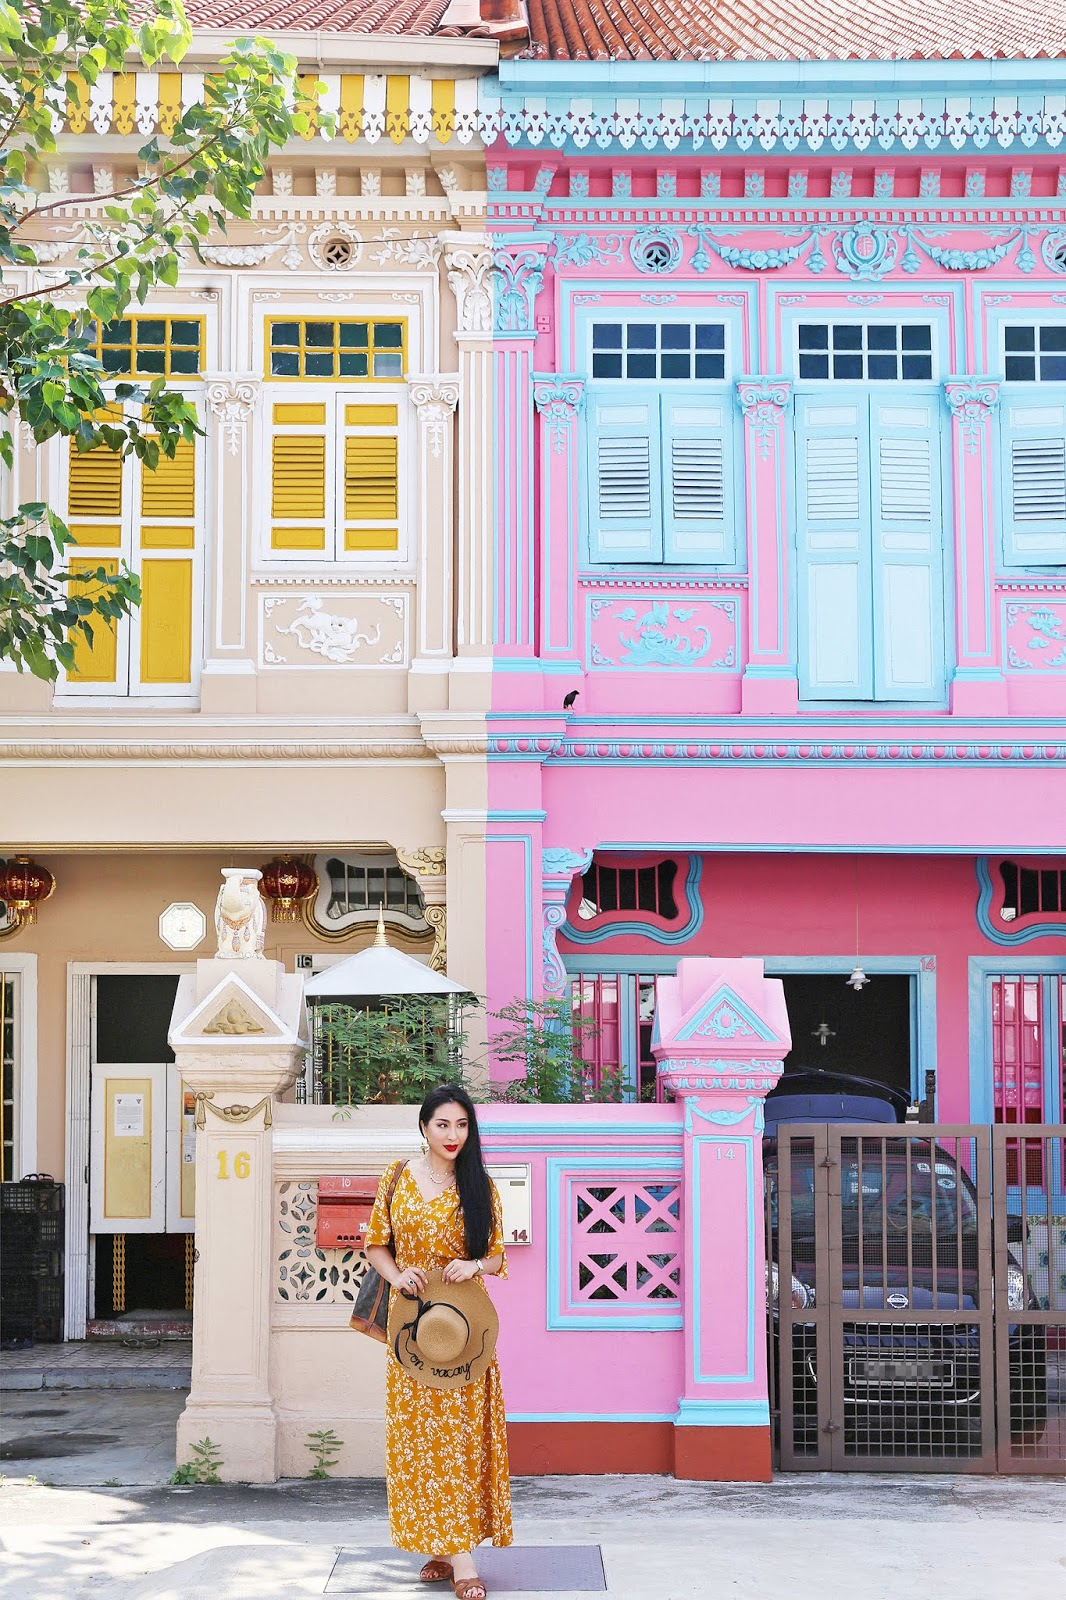 Singapore: My Identity, My Heritage, My Multi-National Upbringing, & More by Posh, Broke, & Bored